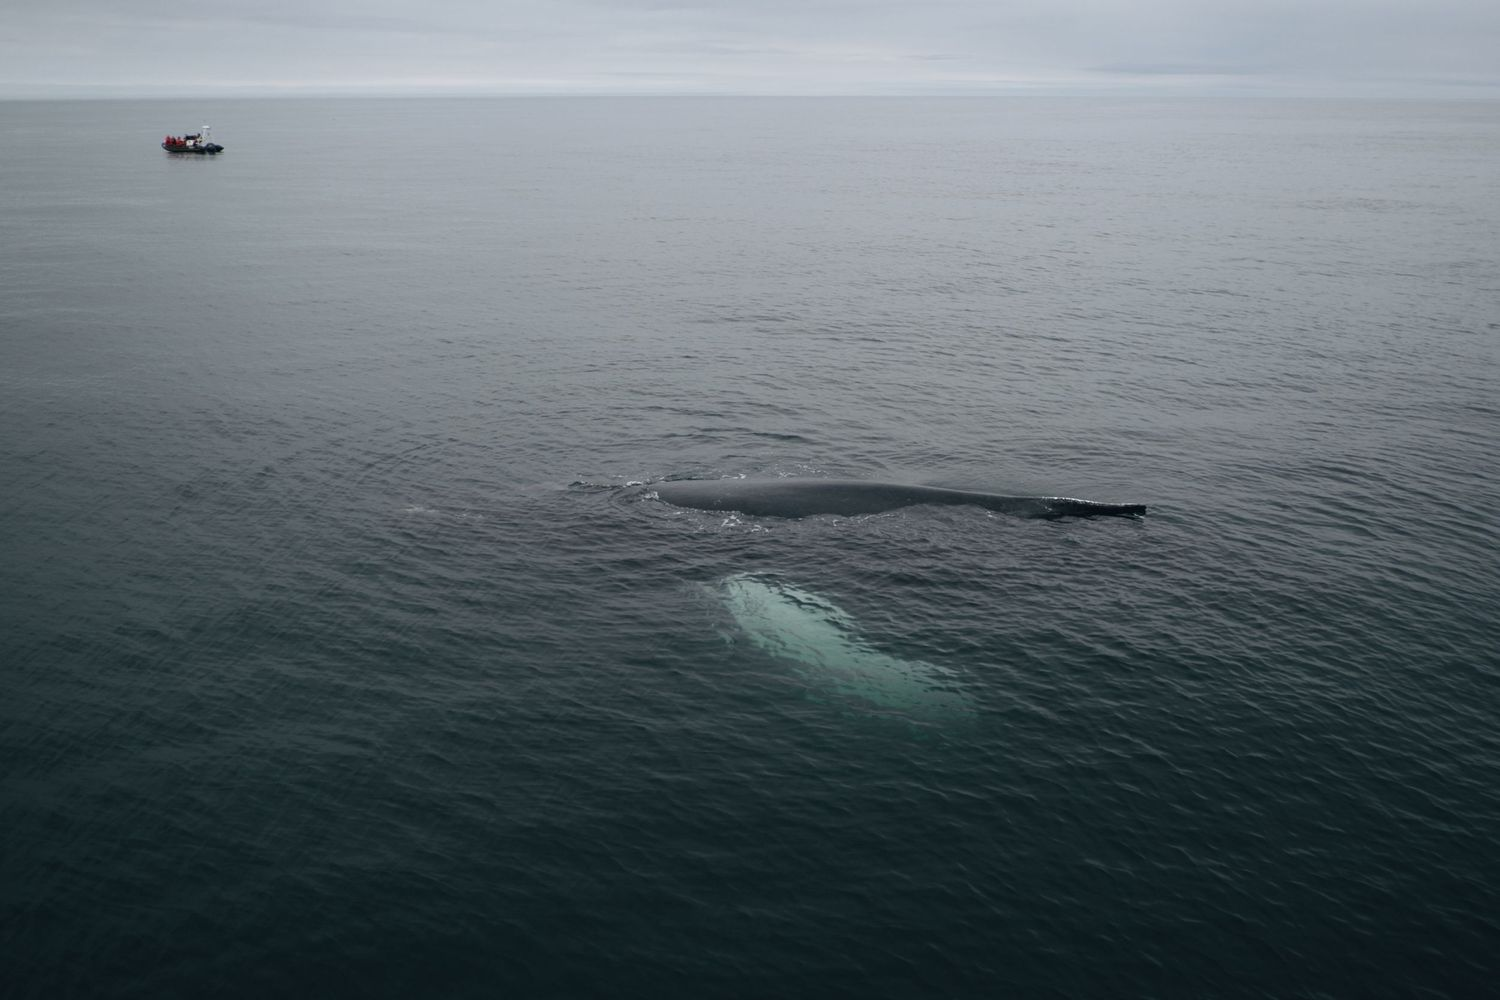 shot from above of a humpback whale swimming just under the surface of dark ocean water, a small boat in the distance